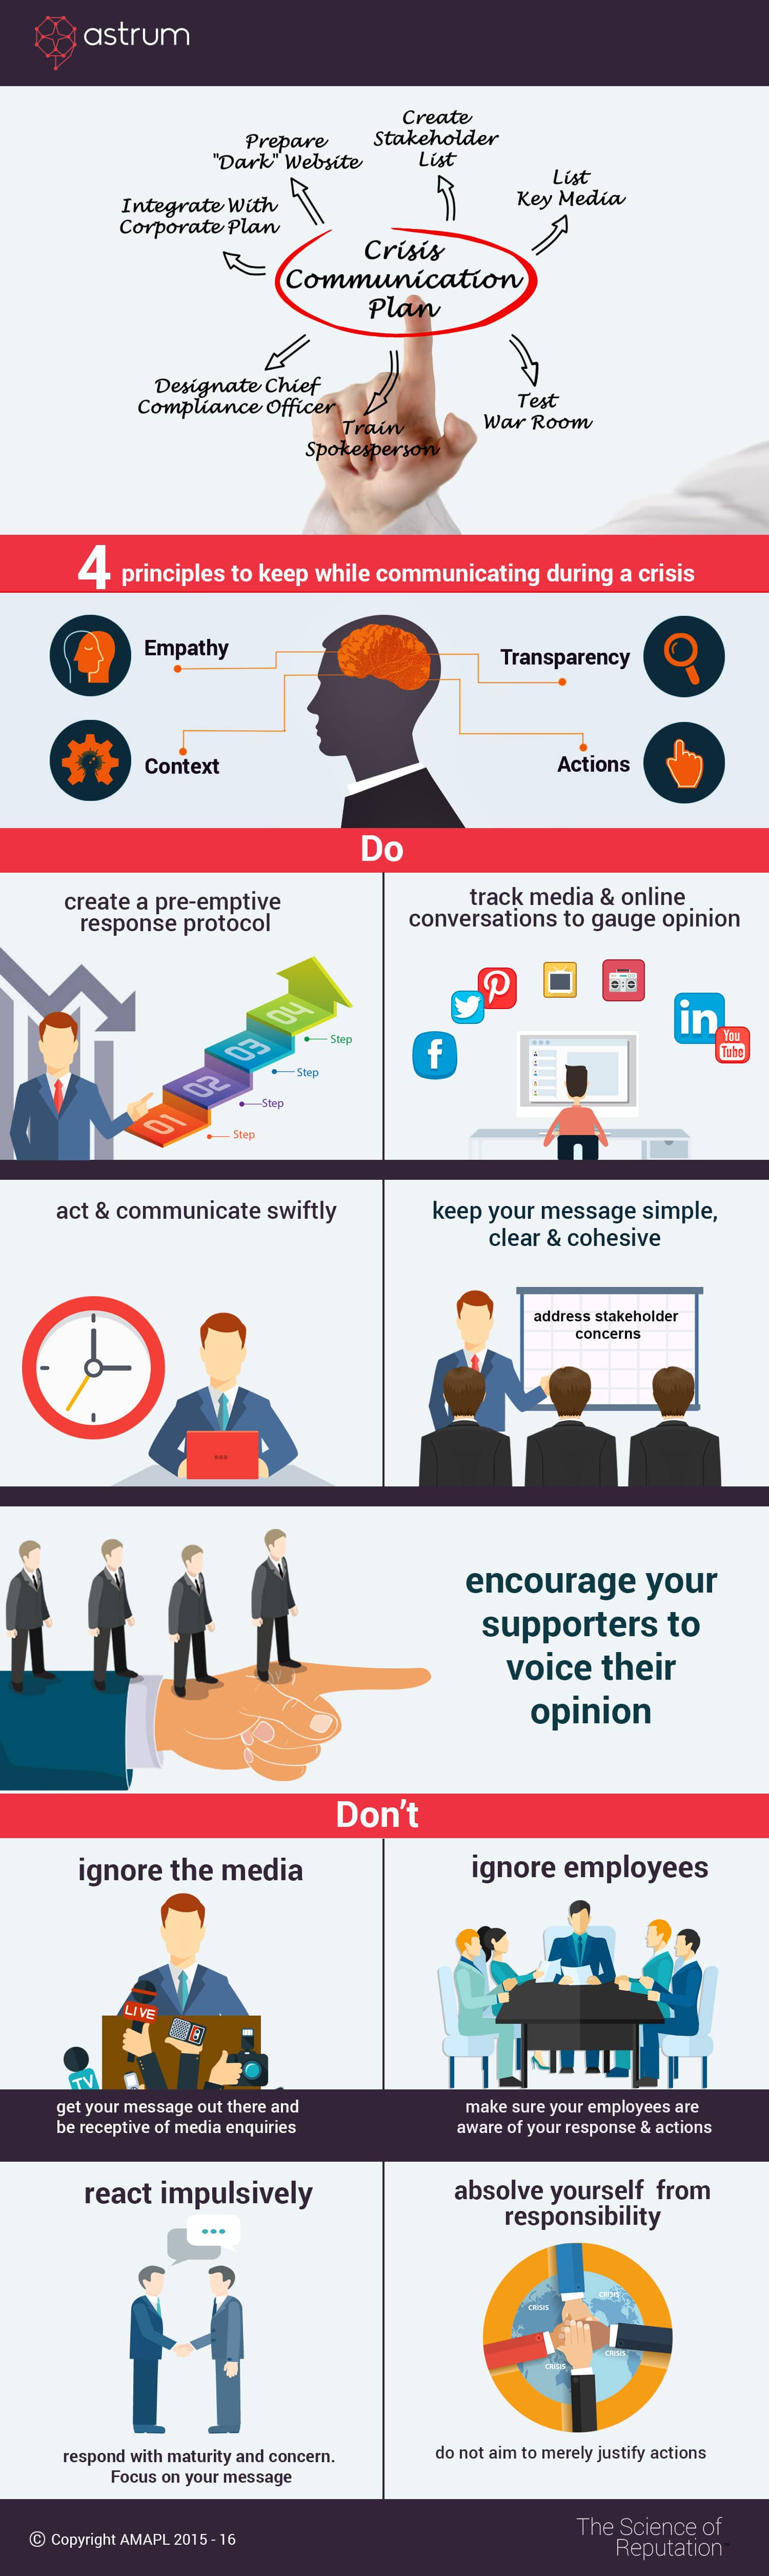 Key Principles of Crisis Communication Plan | Astrum Infographic